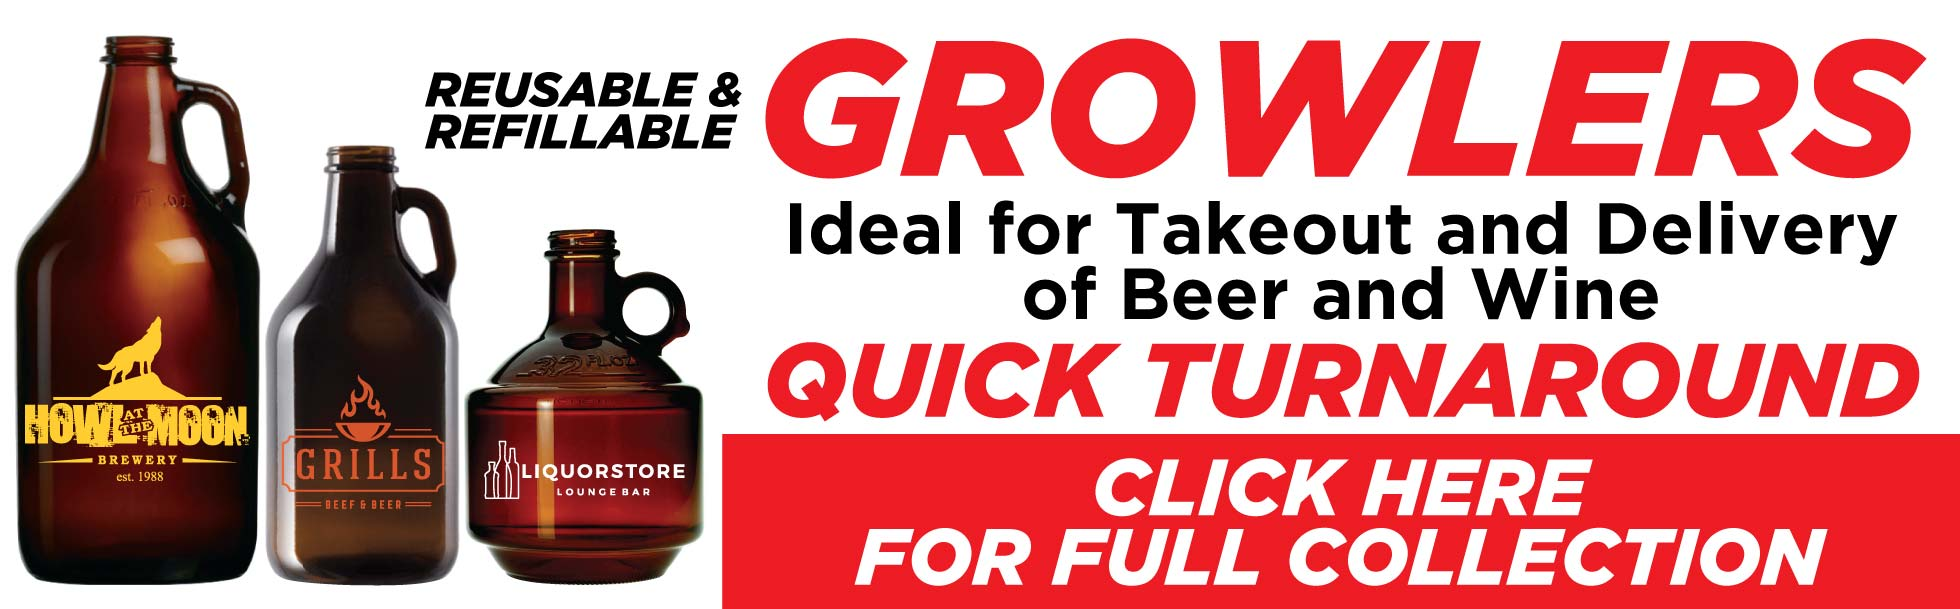 Quick Turnaround on Growlers